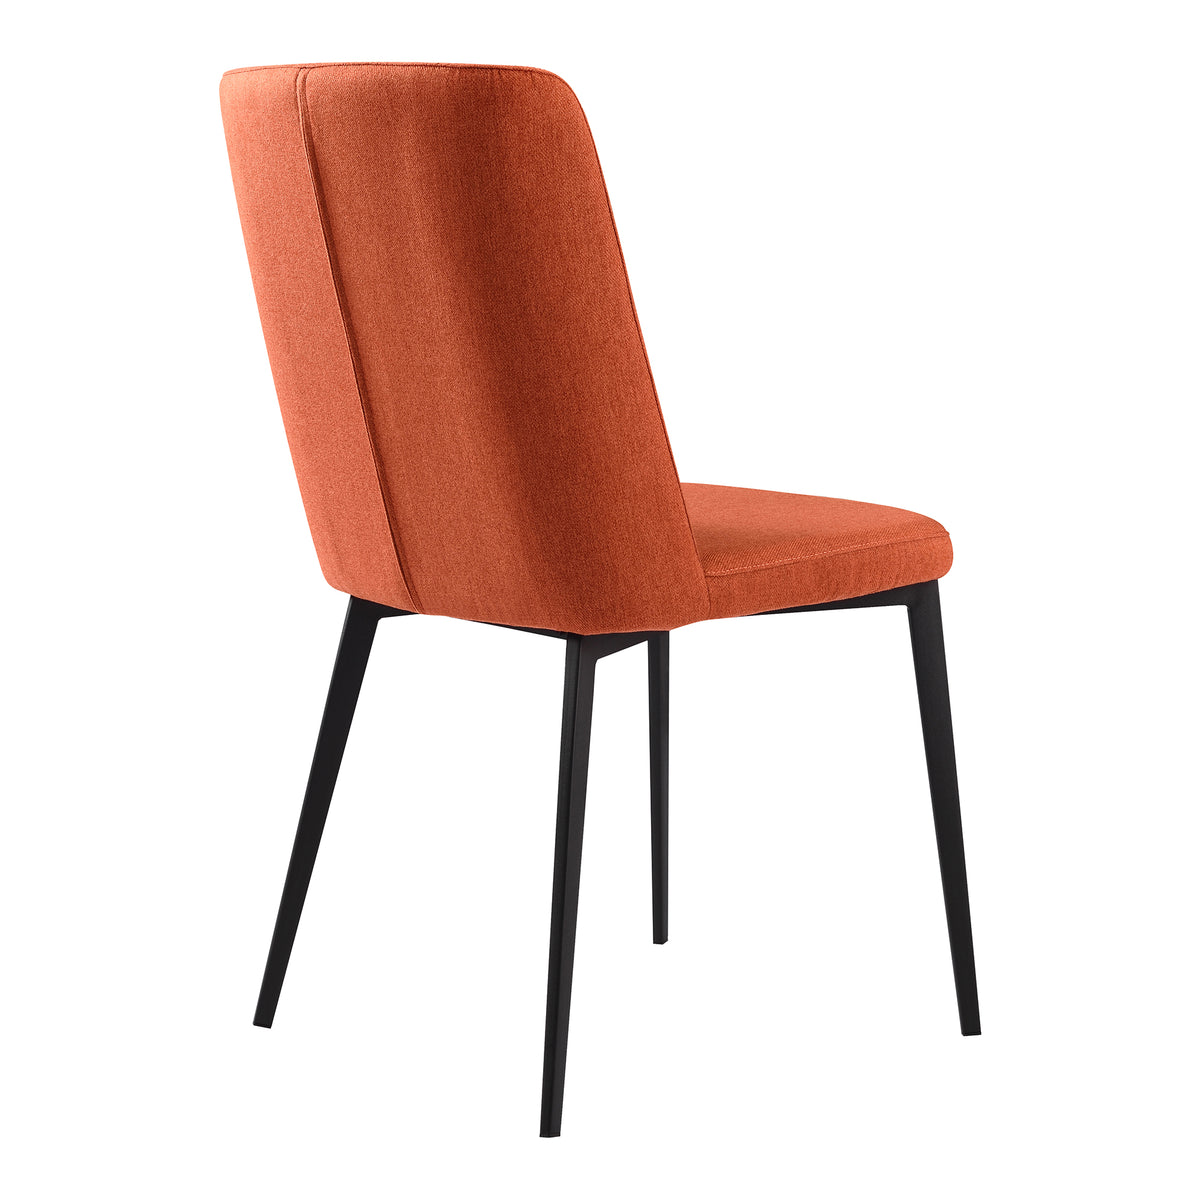 Levo Dining Chair - Set of 2